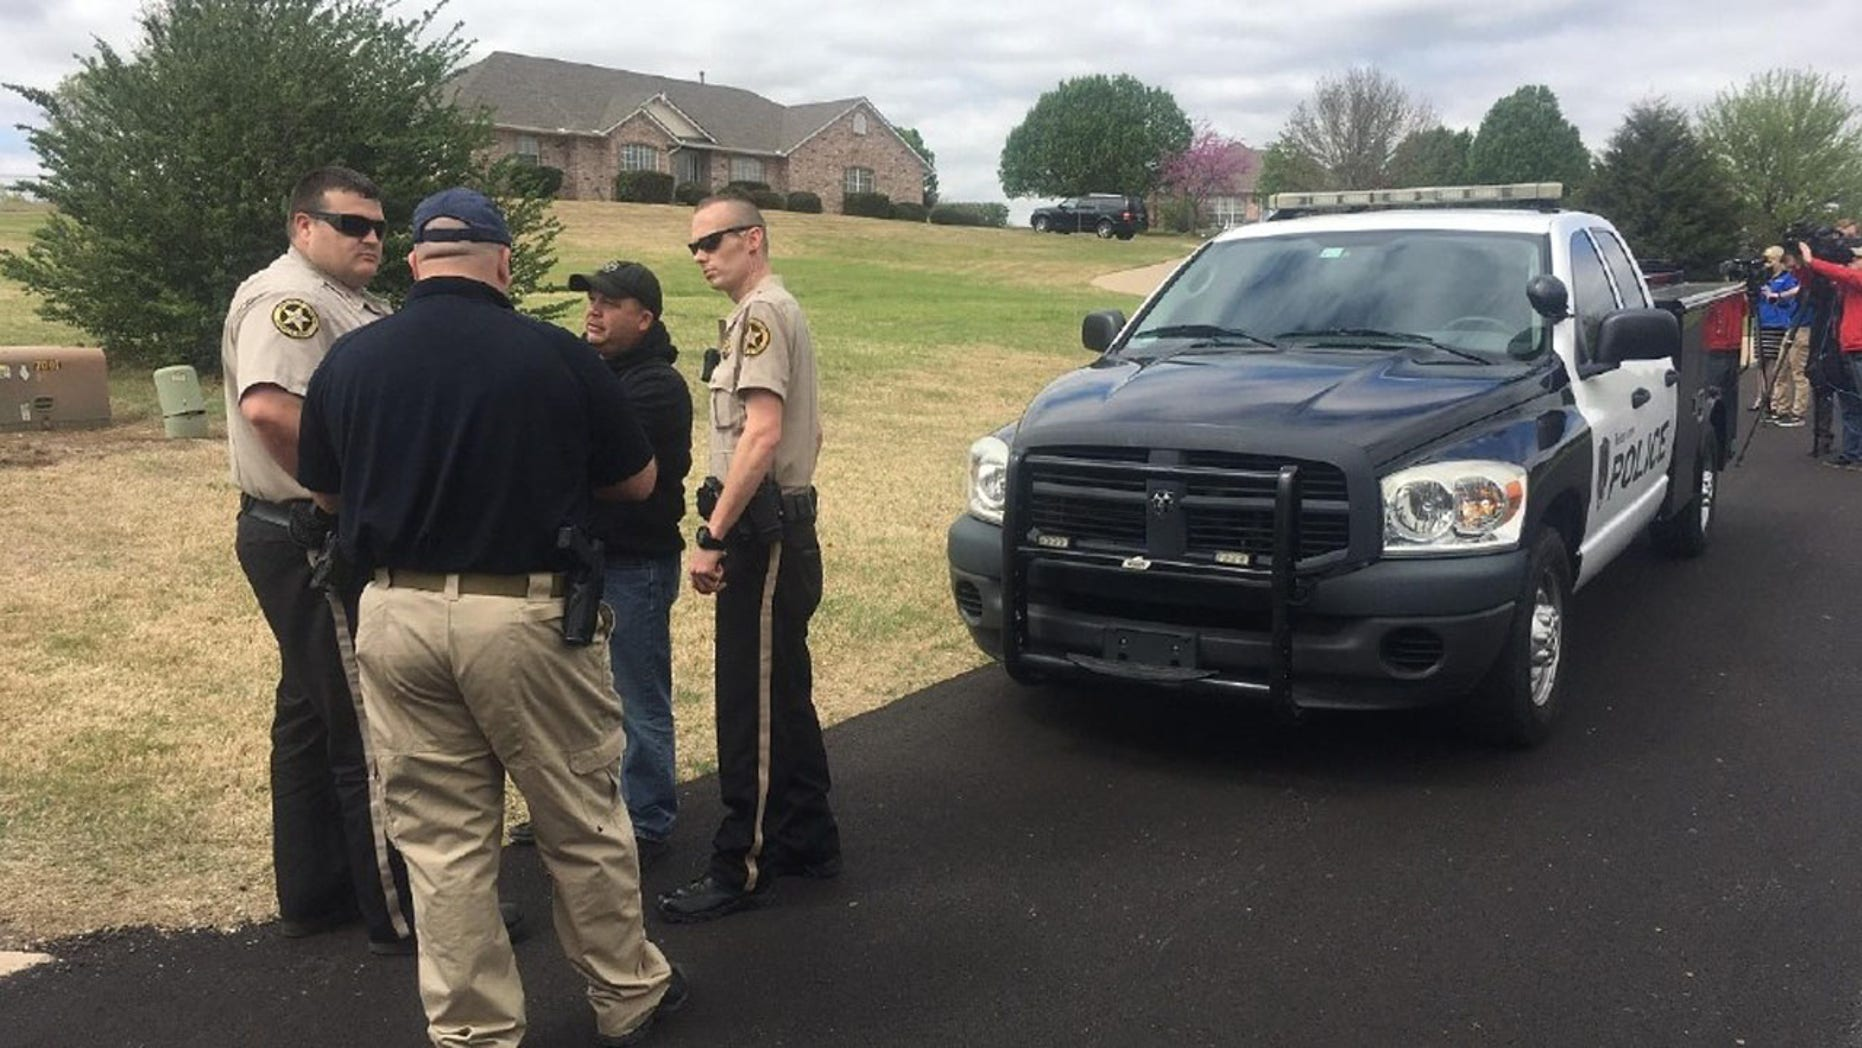 Sheriff's deputies gather outside a home in Broken Arrow, Okla., where three intruders were shot and killed Monday, March 27, 2017.